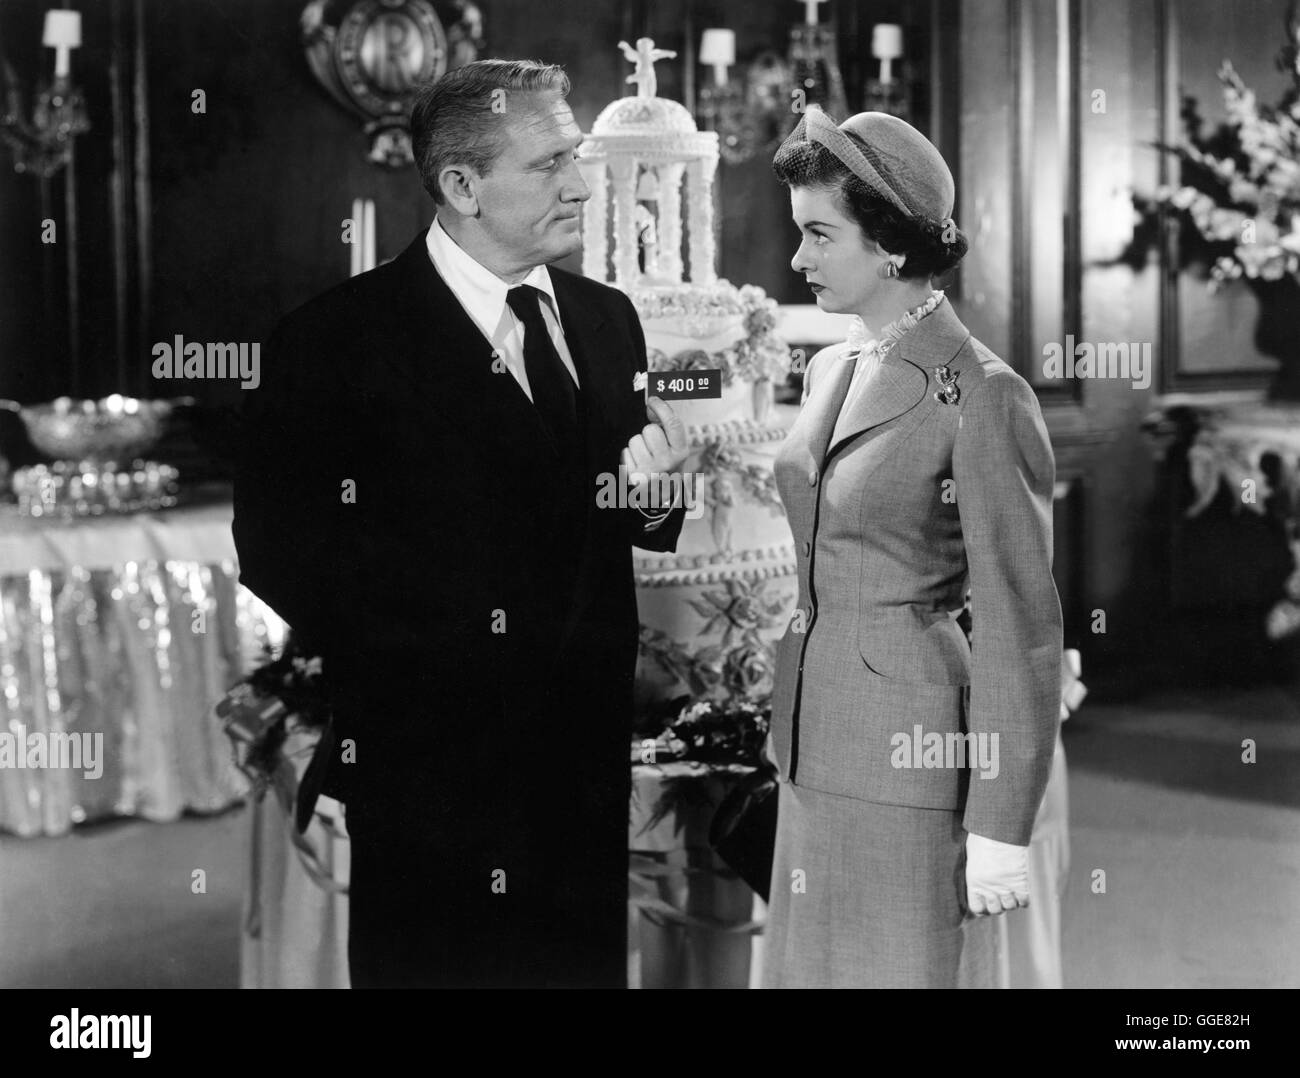 Father Of The Bride 1950 Stock Photos  Father Of The Bride 1950 Stock Images  Alamy